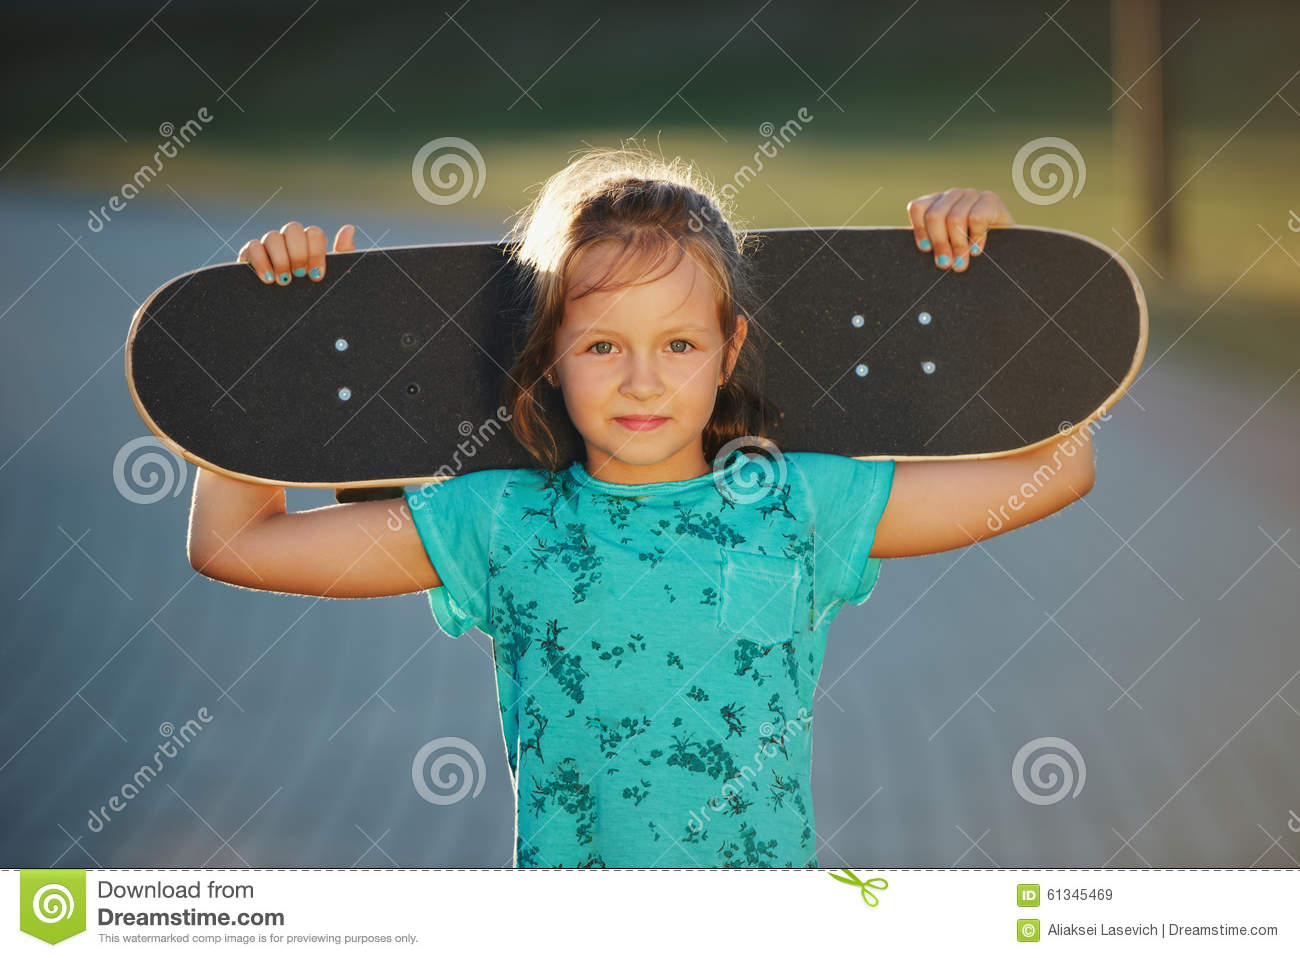 Does cute girl on skateboard consider